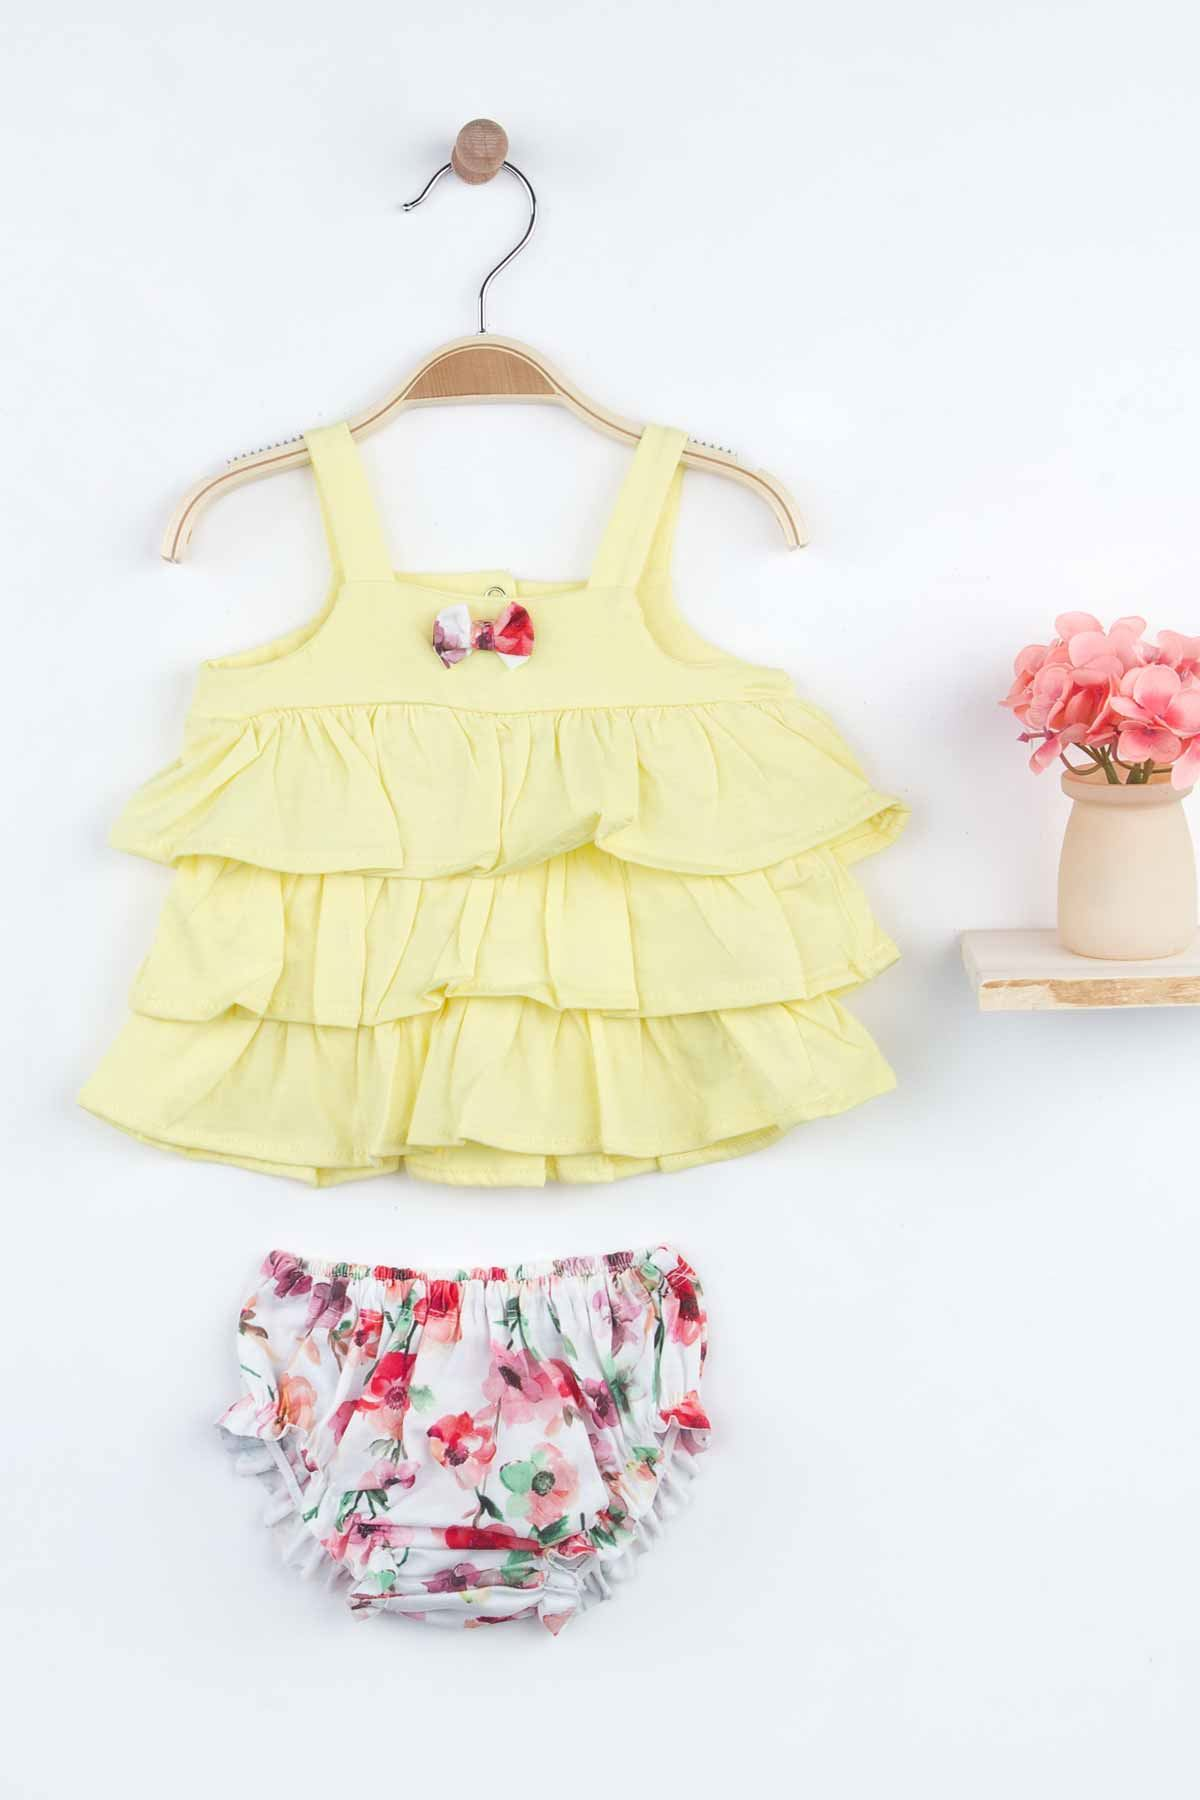 Yellow Summer Baby Girl Suit Shorts Body Hair Bandana Clothing Summer Holiday Girls Babies Comfortable Daily Cotton Underwear Se